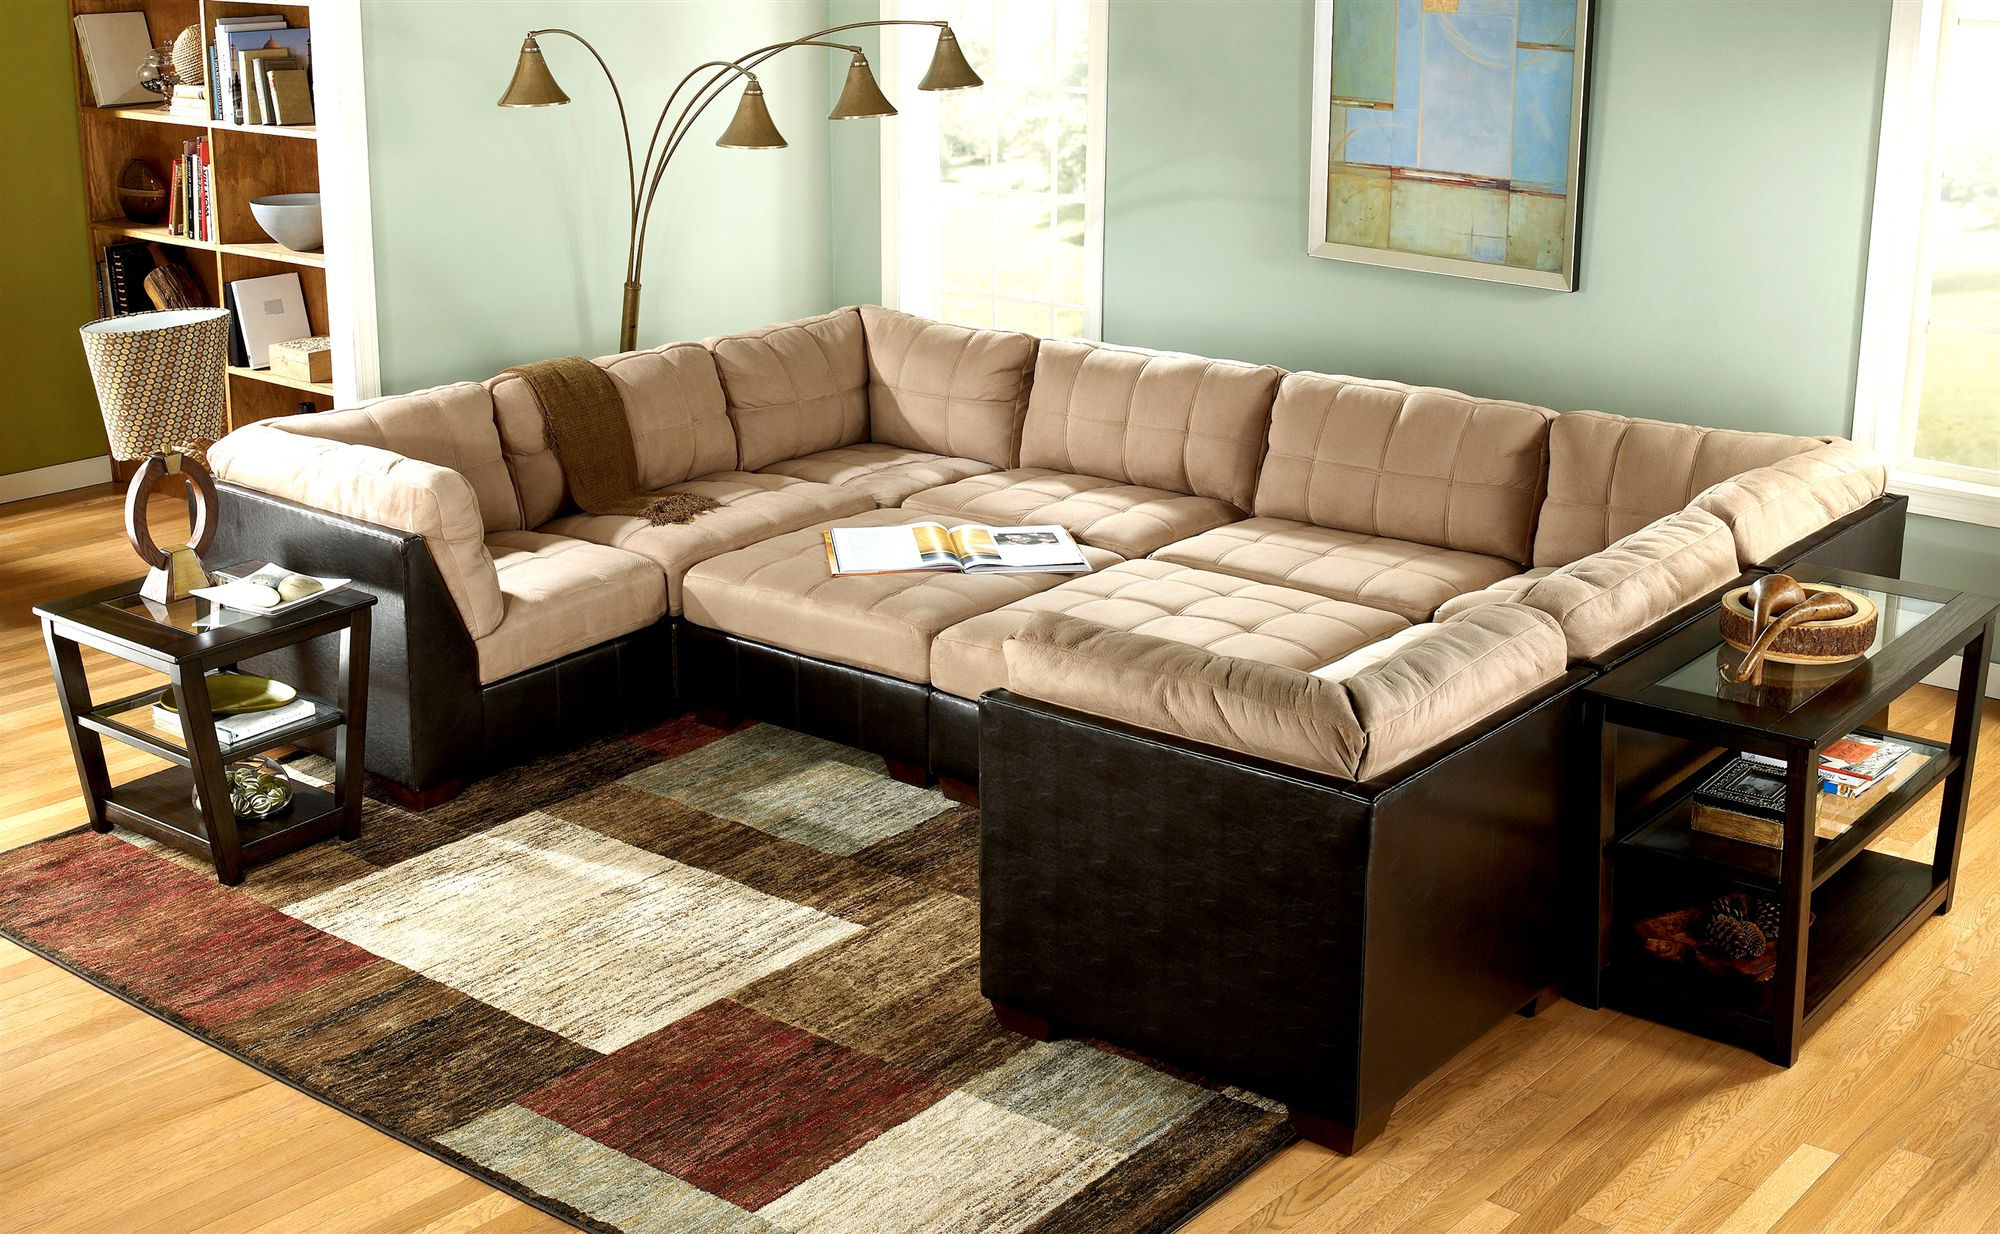 Living room ideas with sectionals sofa for small living for Living room layout with sectional